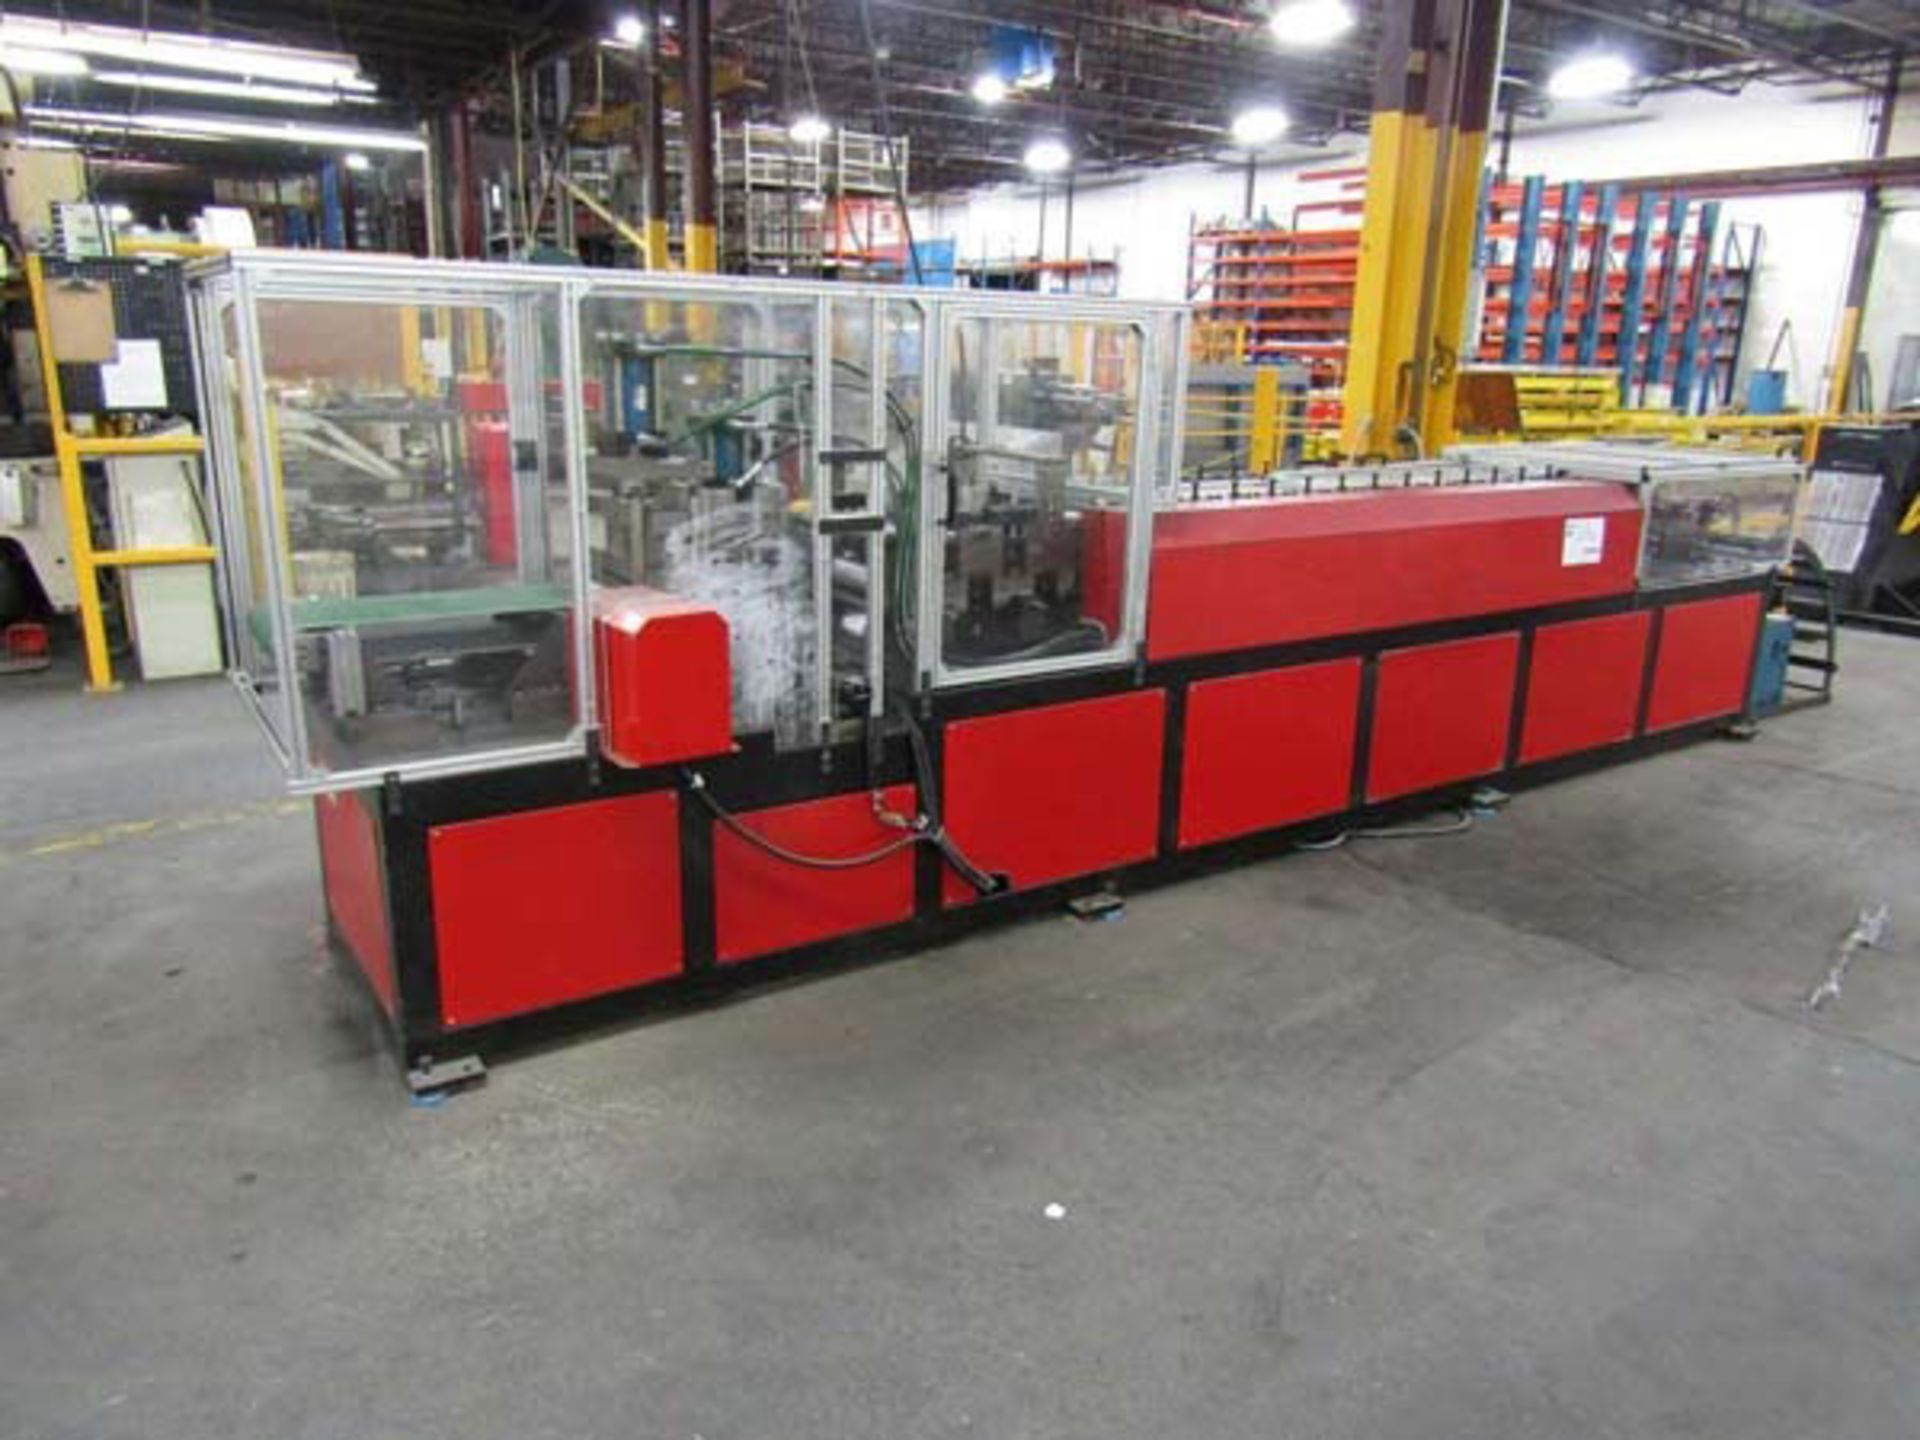 "Lot 47 - 2016 ACL Rollforming Line | 14 Stand x 13.75"" RS x 1.5"" Shaft, Mdl: LZJ-HCB, S/N: 16111001 - 8448P"